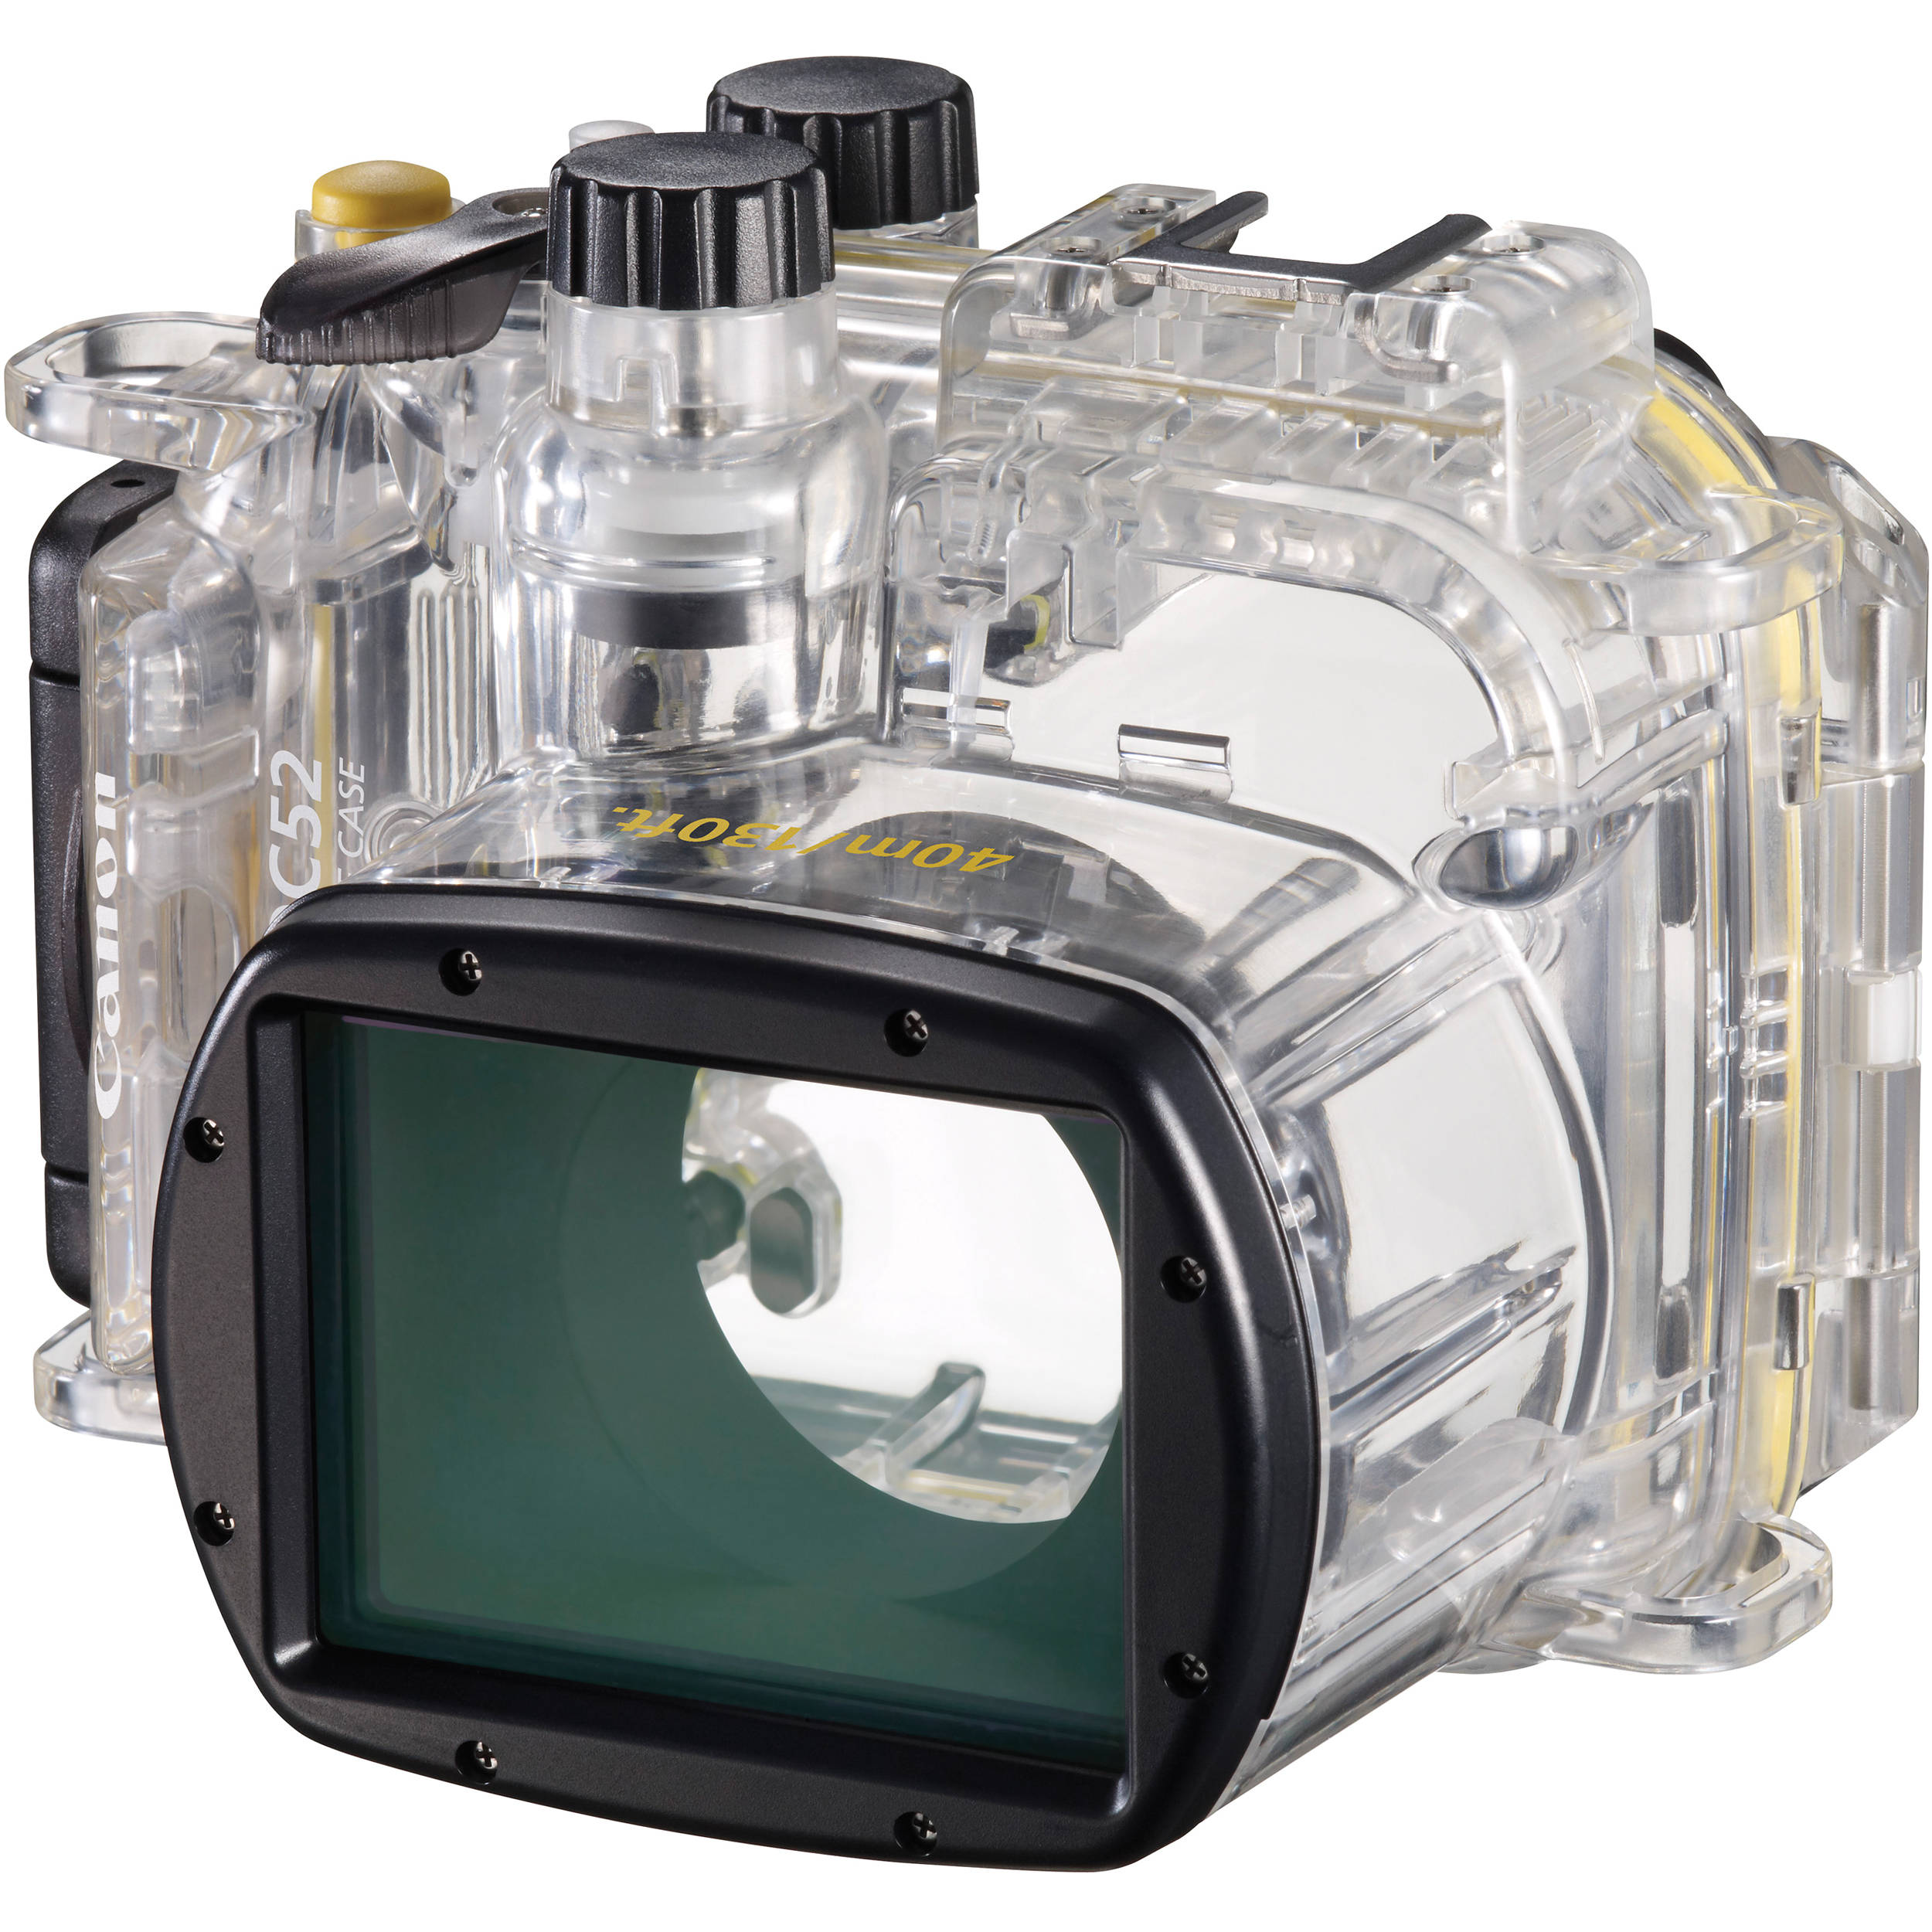 Canon WP DC52 Waterproof Case for PowerShot G16 8722B001 B&H